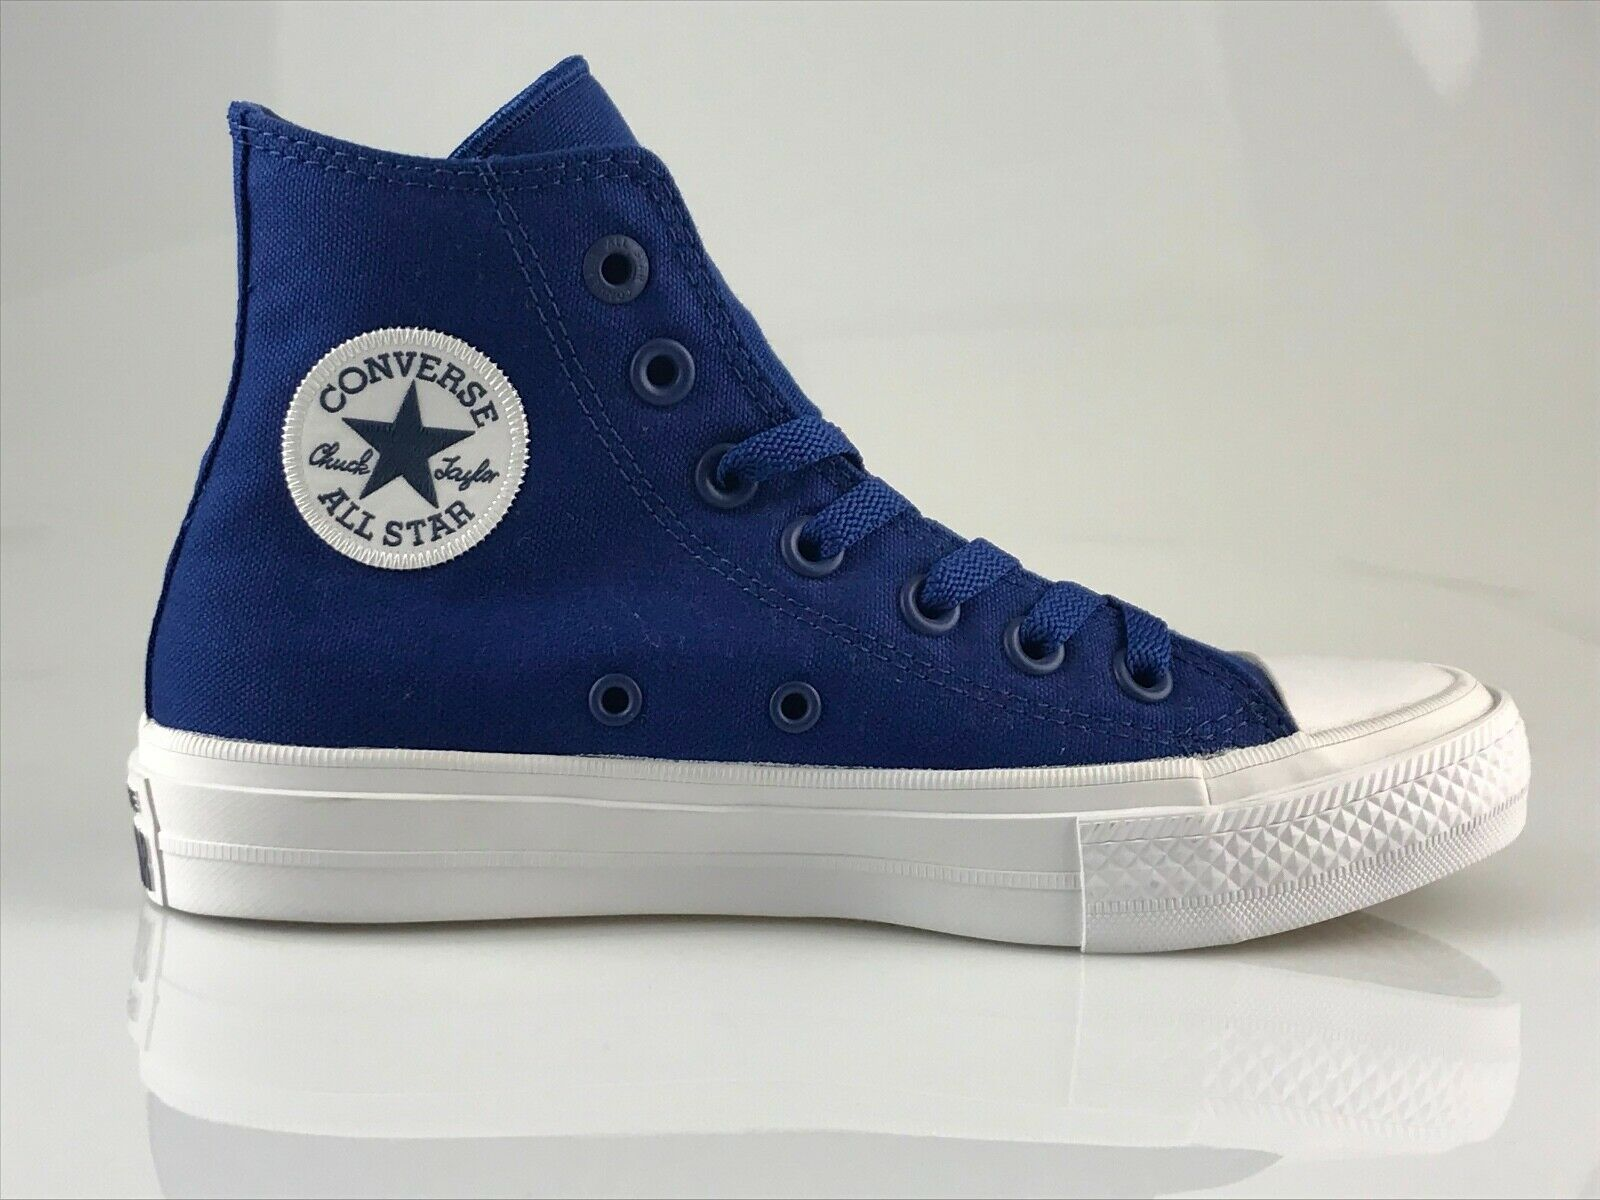 Converse Chuck Taylor All Star II High blau 150146C Turnschuhe Unisex